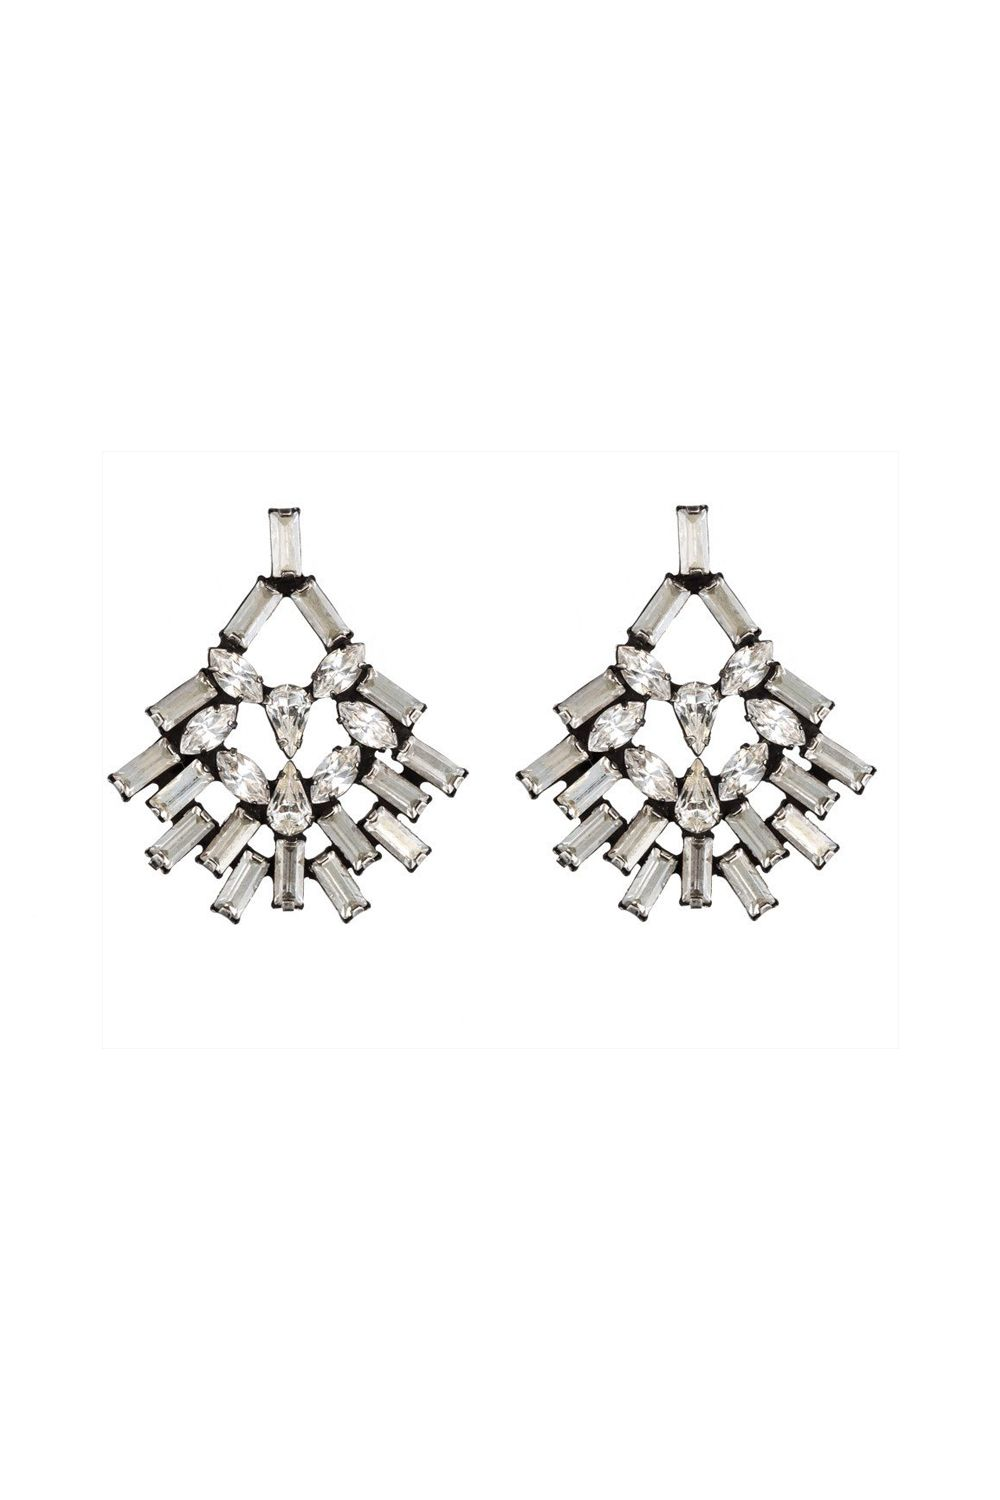 "<p>Fancy, yes, but can also be worn with your t-shirts and jorts. </p><p><strong data-redactor-tag=""strong"" data-verified=""redactor"">Capelle Earrings, $295; <a href=""https://dannijo.com/products/capelle?variant=24544202309"" data-tracking-id=""recirc-text-link"">dannijo.com</a>.</strong></p>"